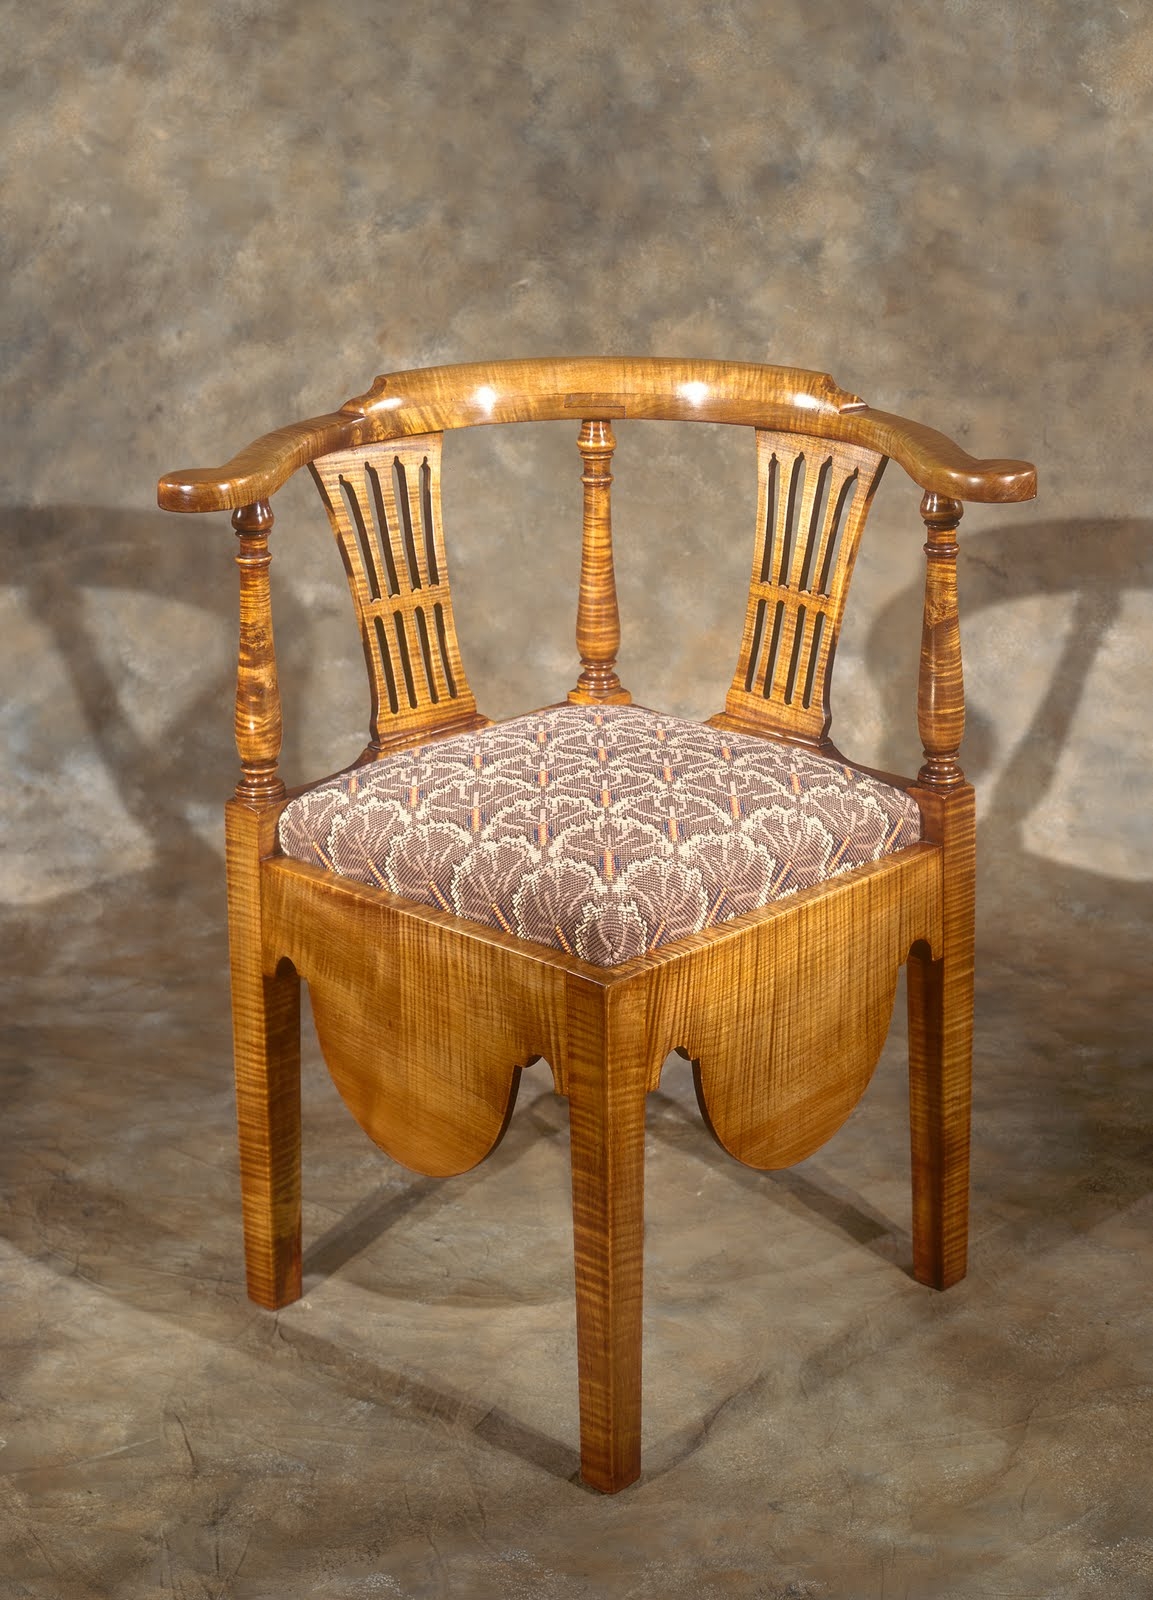 Roundabout Chair - WPatrickEdwards: Roundabout Chair - Antique Corner Chair  Value Antique Furniture - Antique - Antique Corner Chair Value Antique Furniture